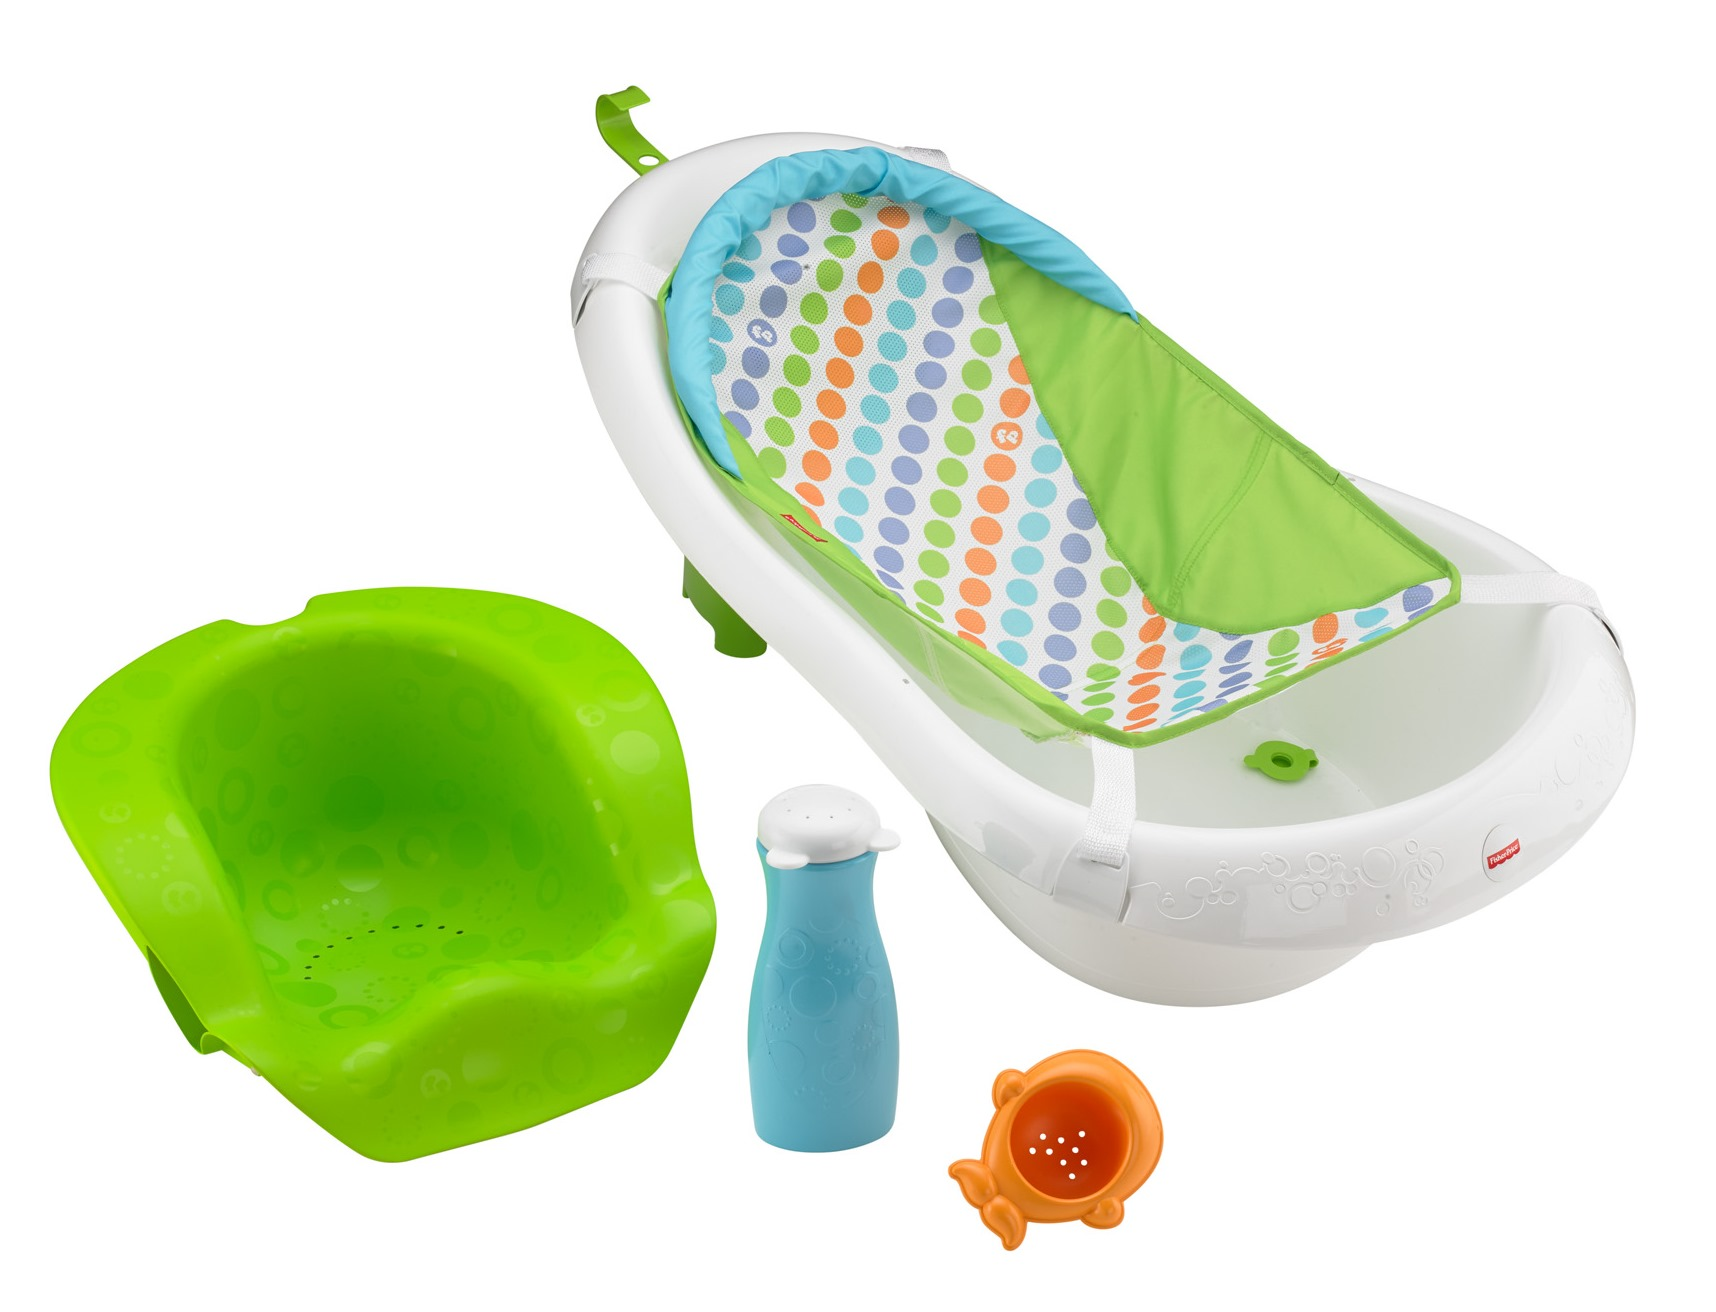 garanimals baby bathtub 28 images garanimals xylophone best see all drums percussion. Black Bedroom Furniture Sets. Home Design Ideas